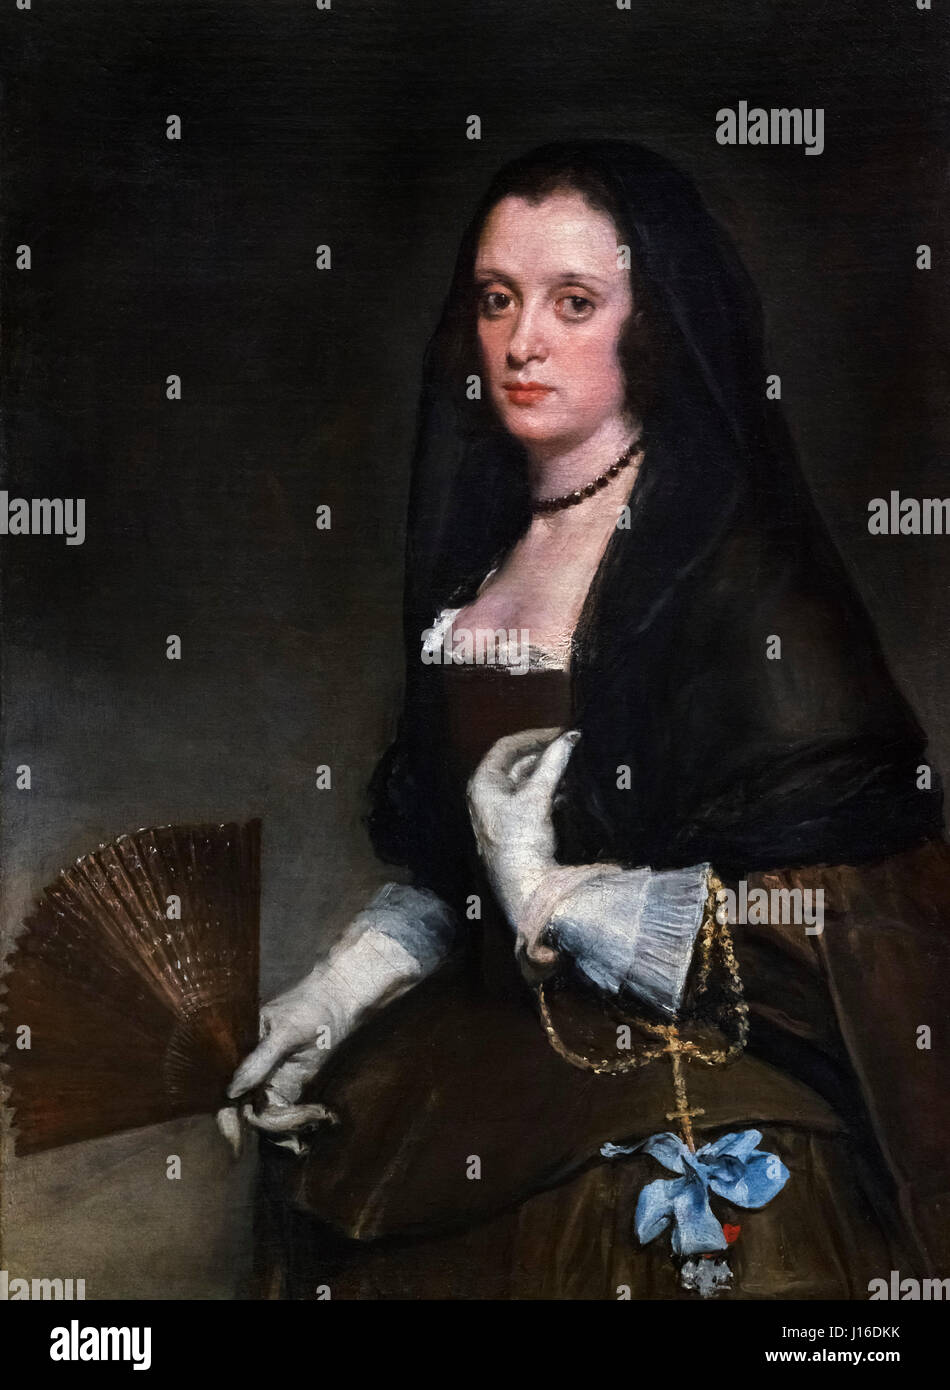 Velazquez. 'The Lady with a Fan' by Diego Velazquez (1599-1660), oil on canvas, c.1640 - Stock Image